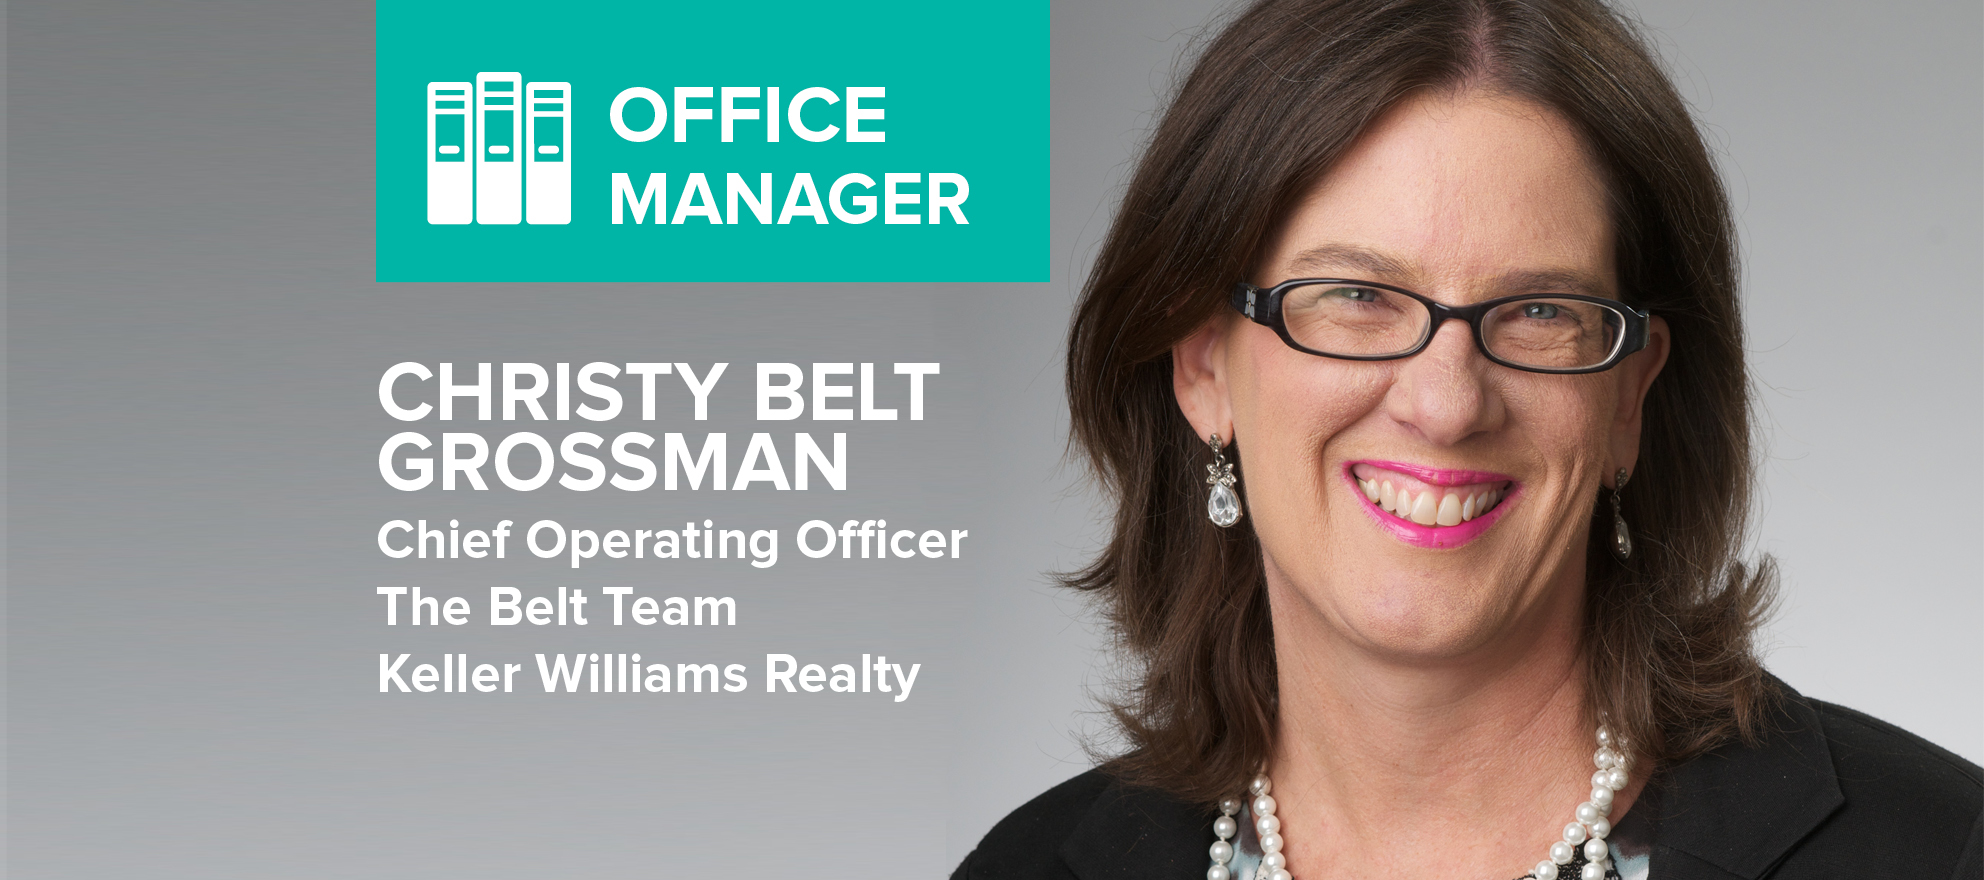 Christy Belt Grossman: 'There are not many careers where you can impact peoples' lives the way we do'